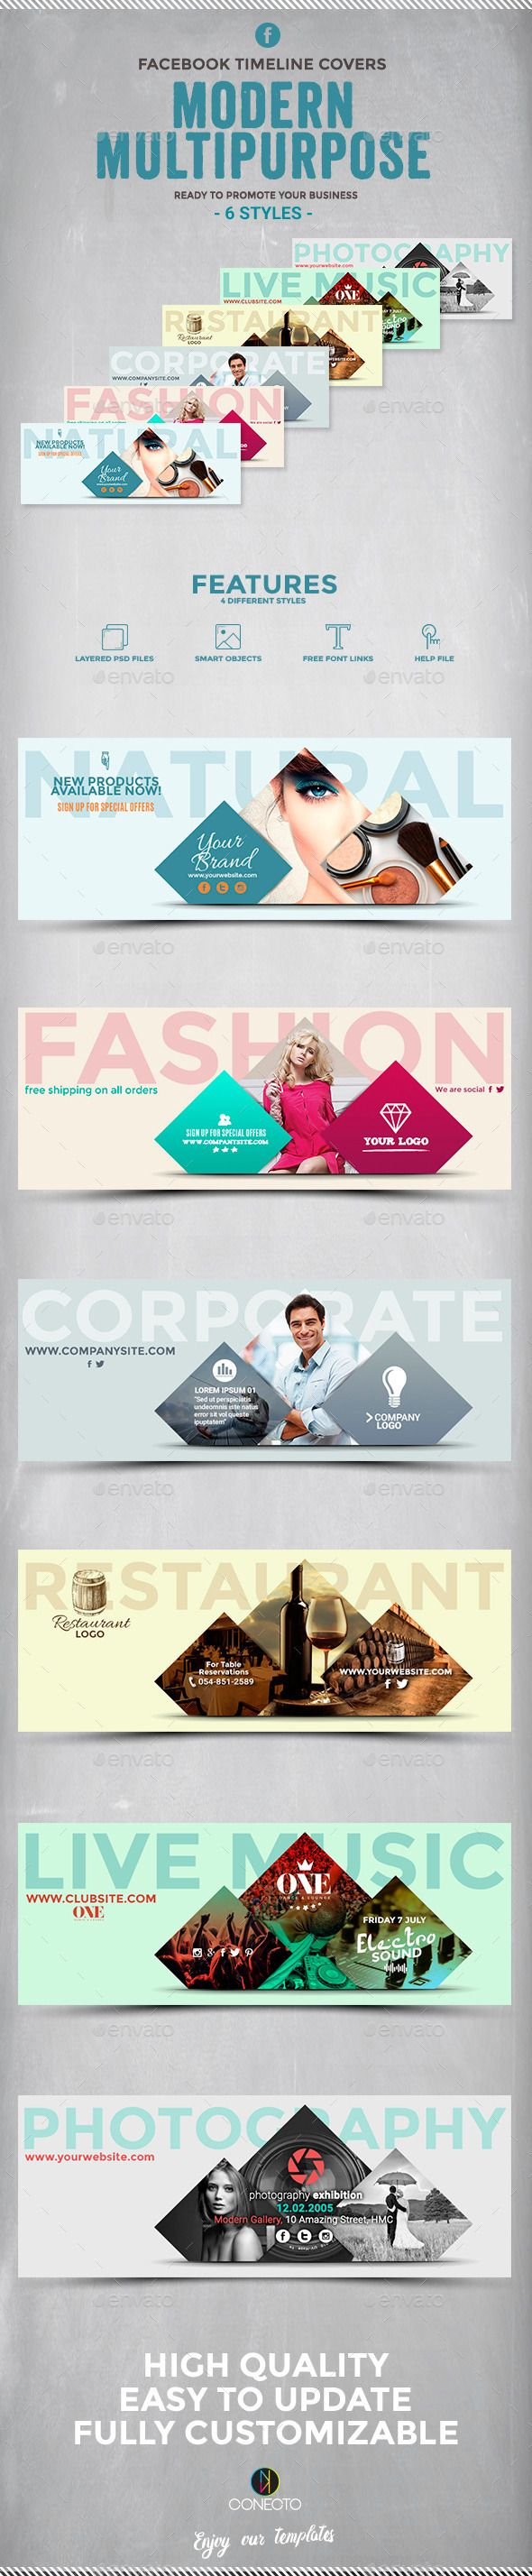 Facebook Timeline Covers - Modern Multipurpose Template #design Download: http://graphicriver.net/item/facebook-timeline-covers-modern-multipurpose/12312225?ref=ksioks